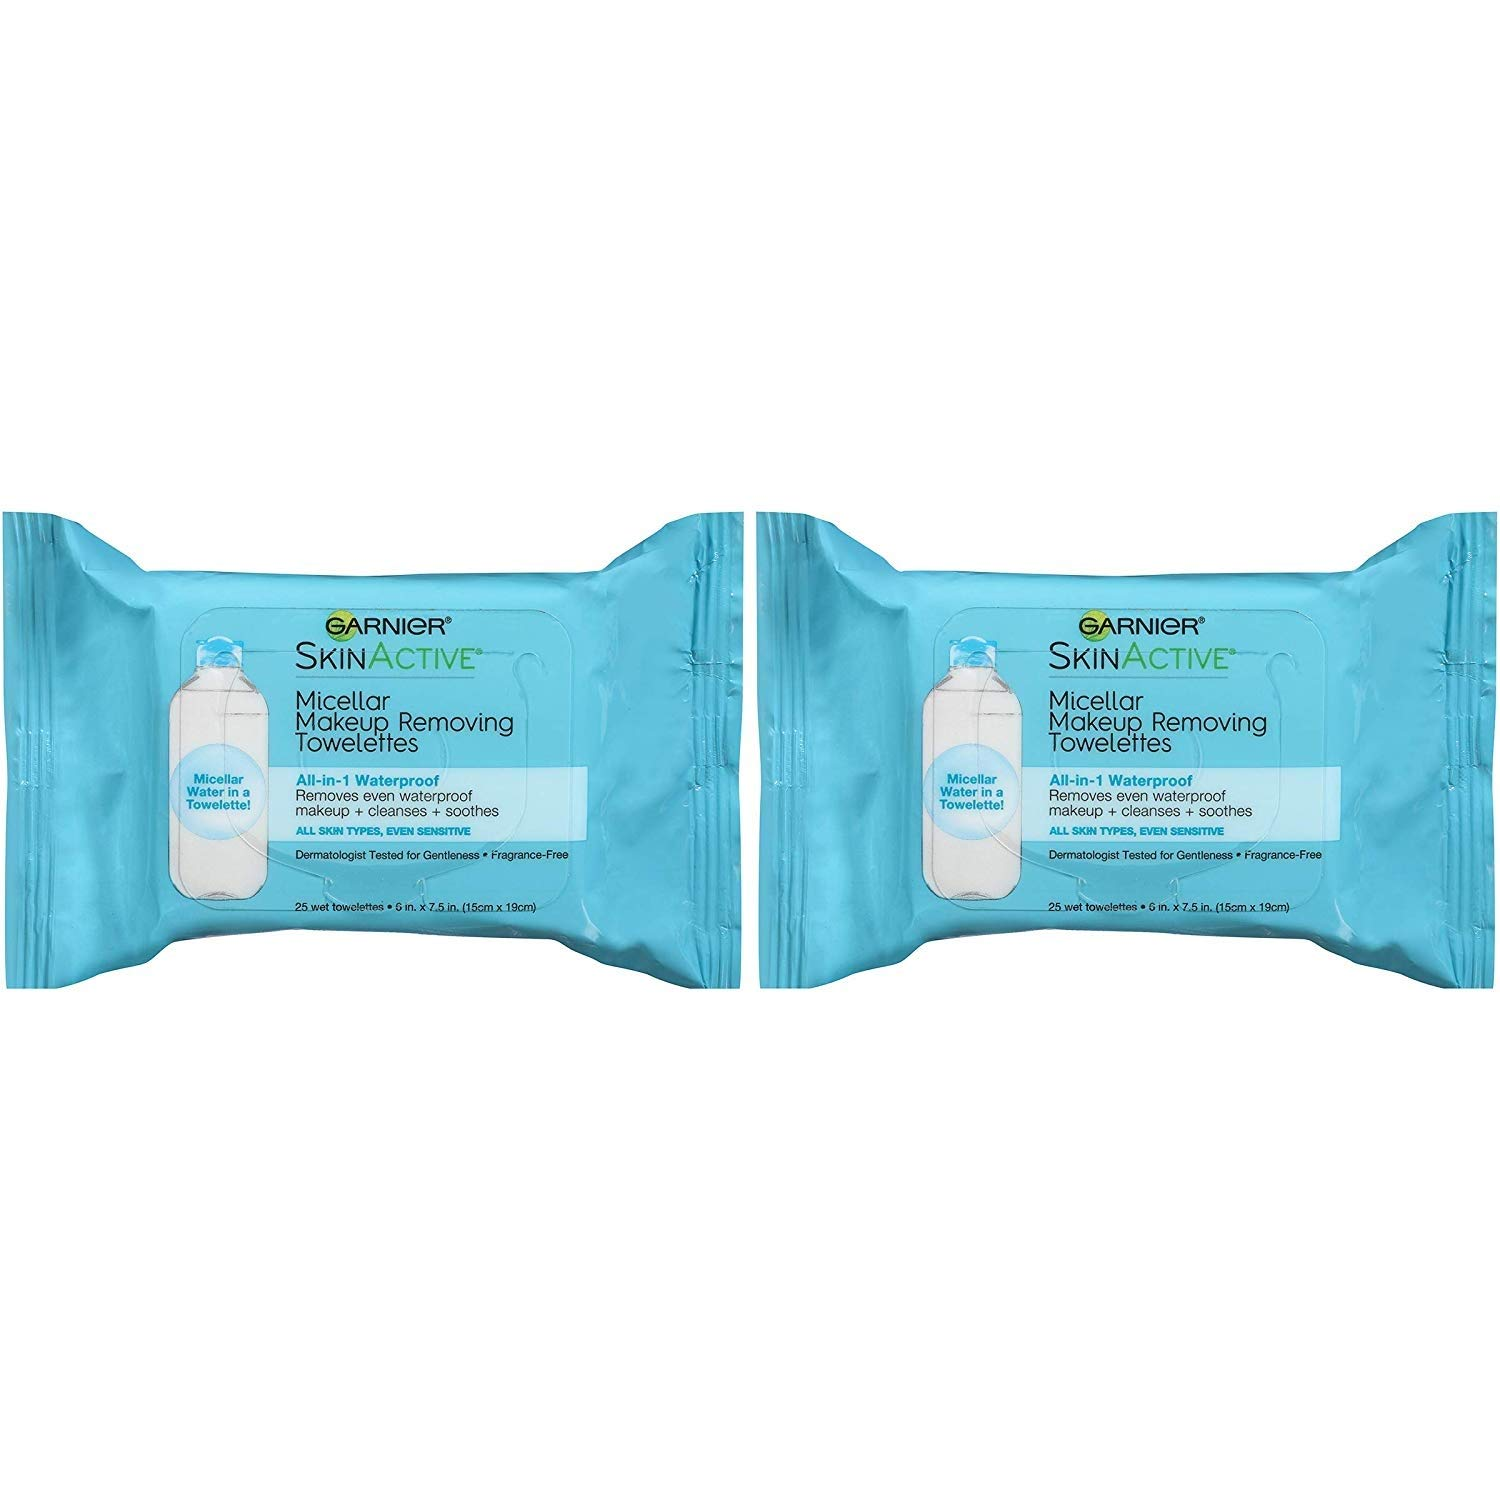 Makeup Remover Micellar Gentle Cleansing Wipes for Waterproof Makeup by Garnier SkinActive, 25 Count, 2 Pack